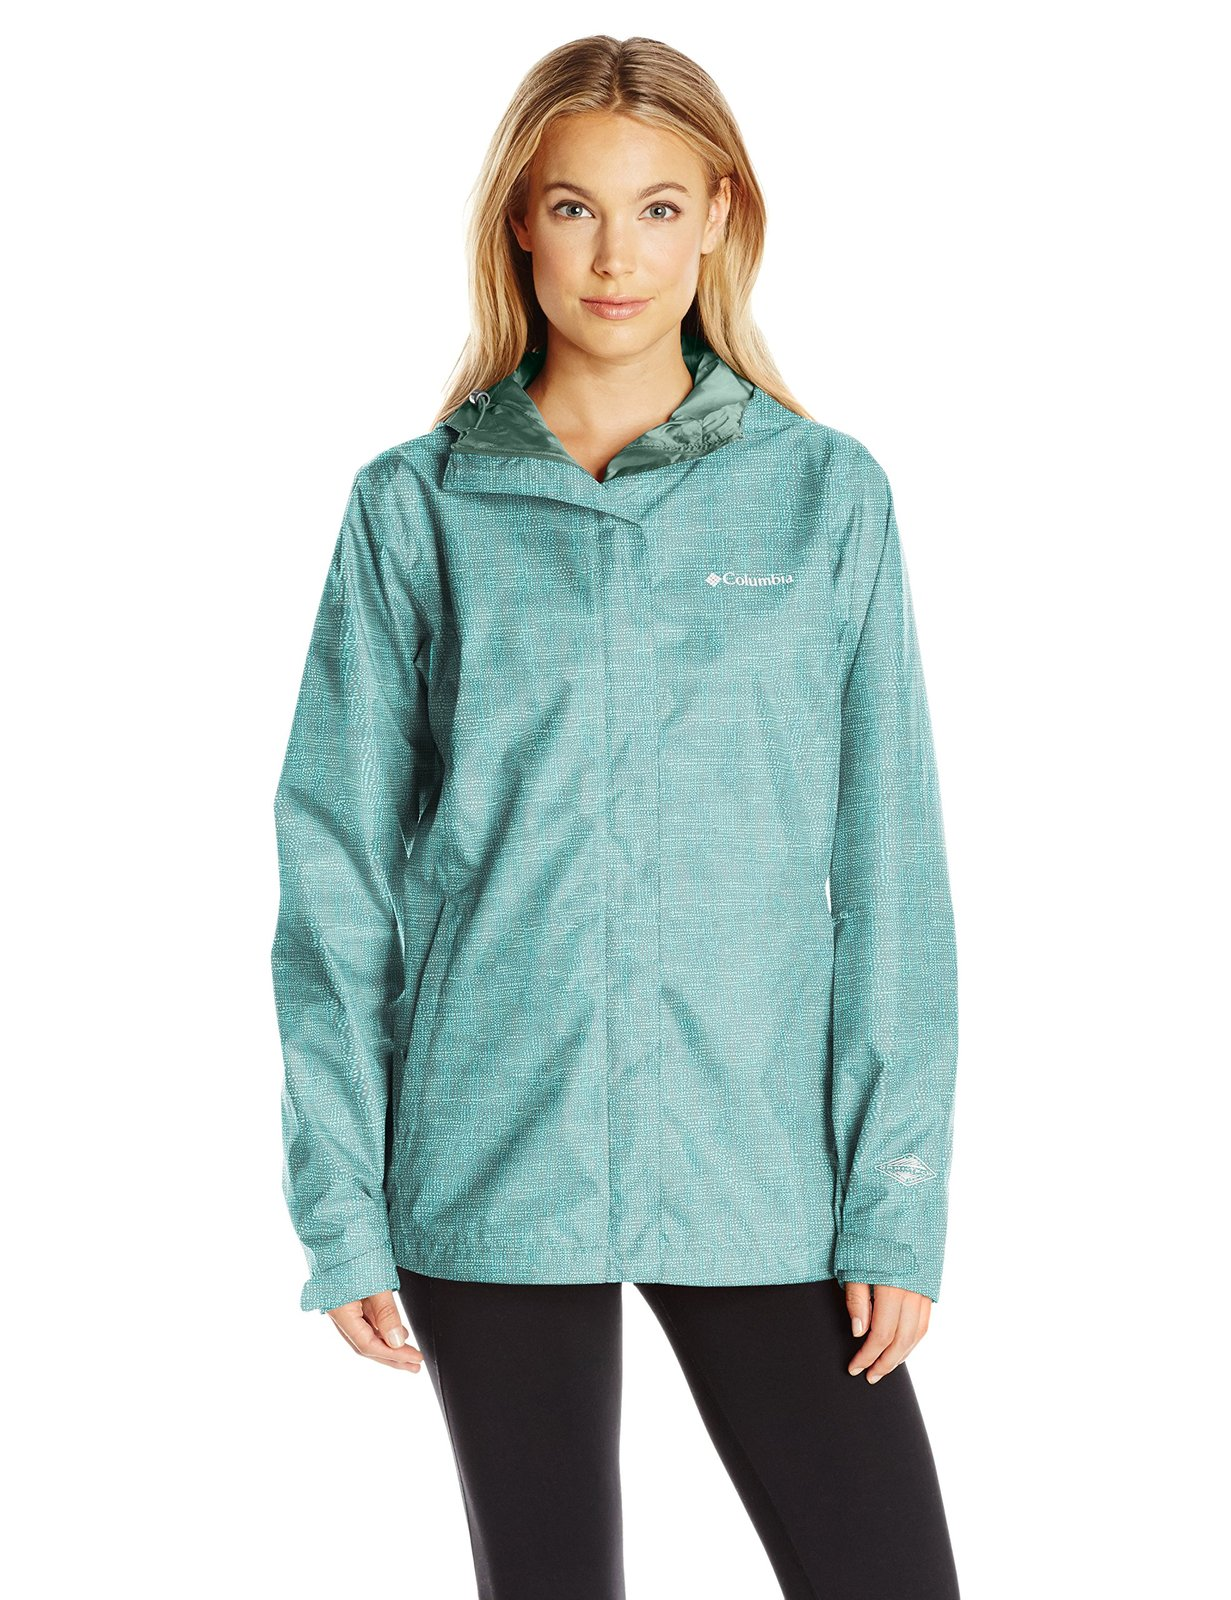 Columbia Women's Arcadia Print Jacket, Pond/Dotty Dye, Medium